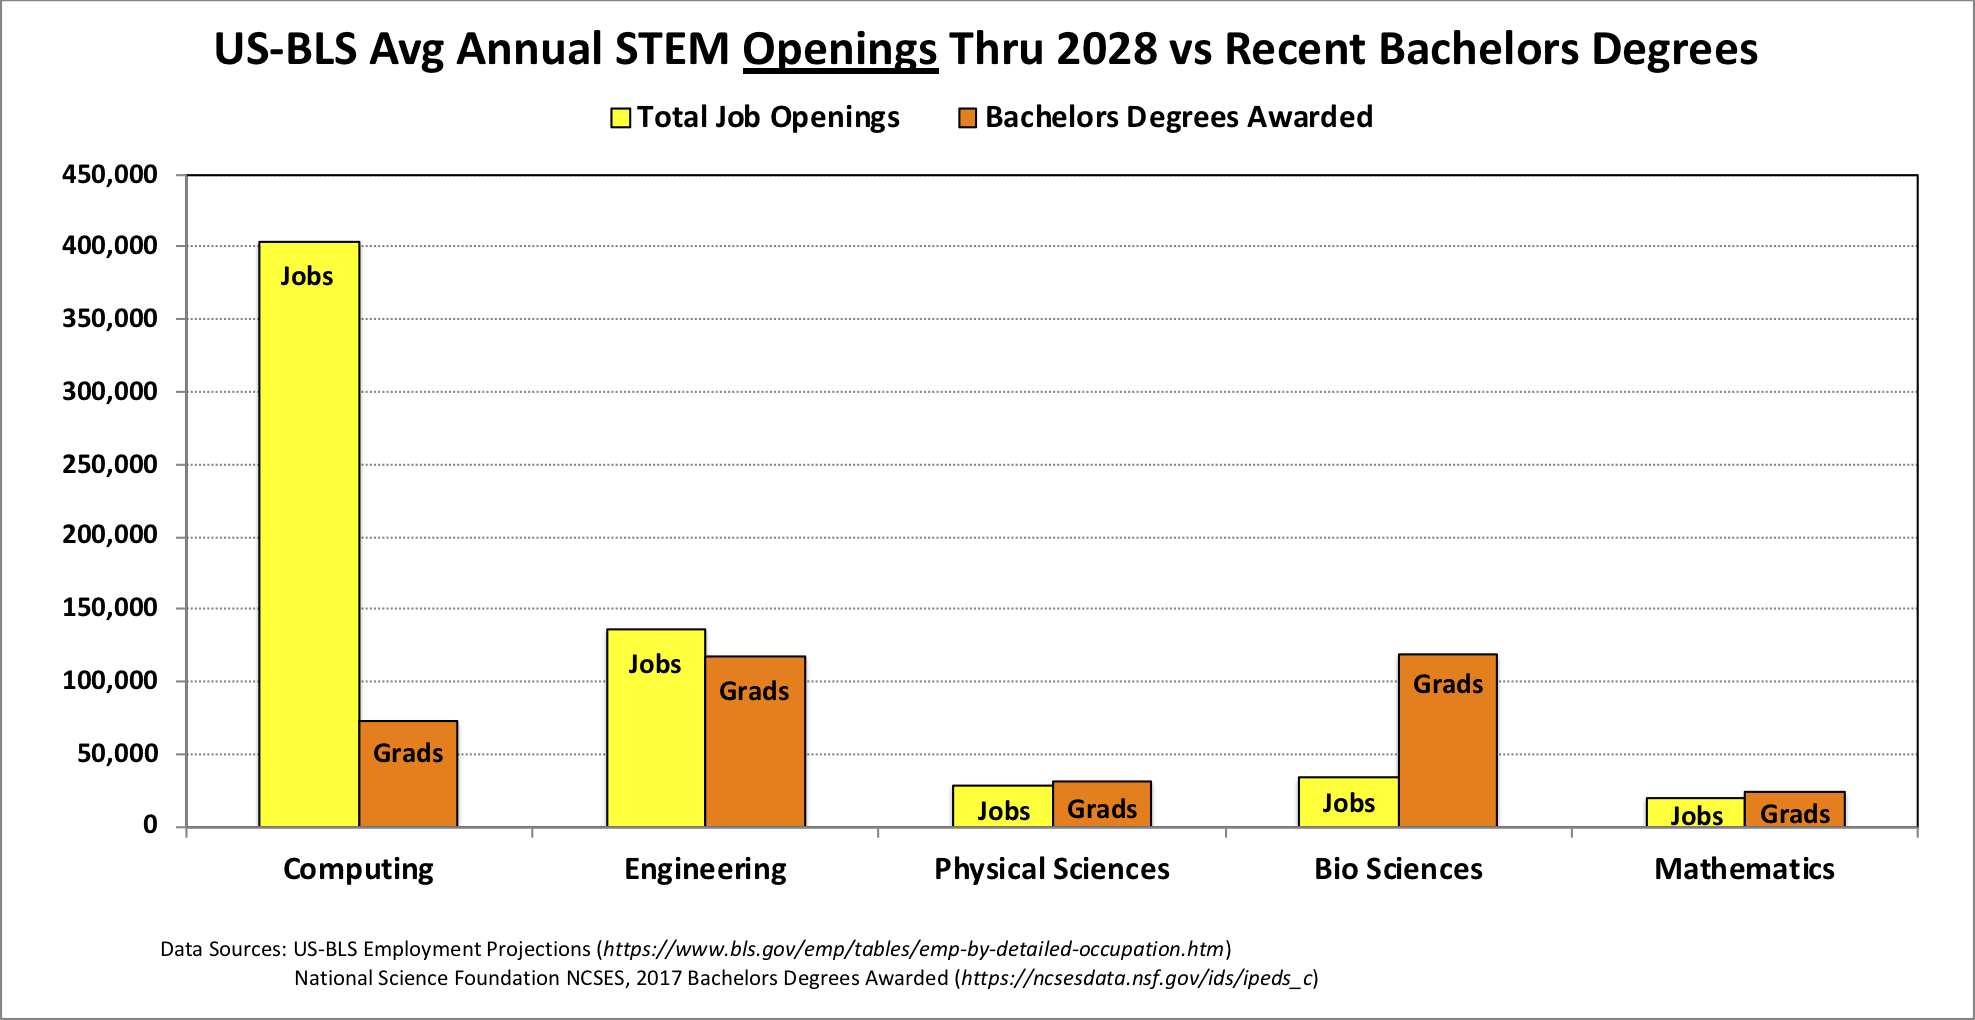 The U.S. Bureau of Labor predicts that between now and 2028,        computing and engineering are the only two STEM areas with more jobs than grads.